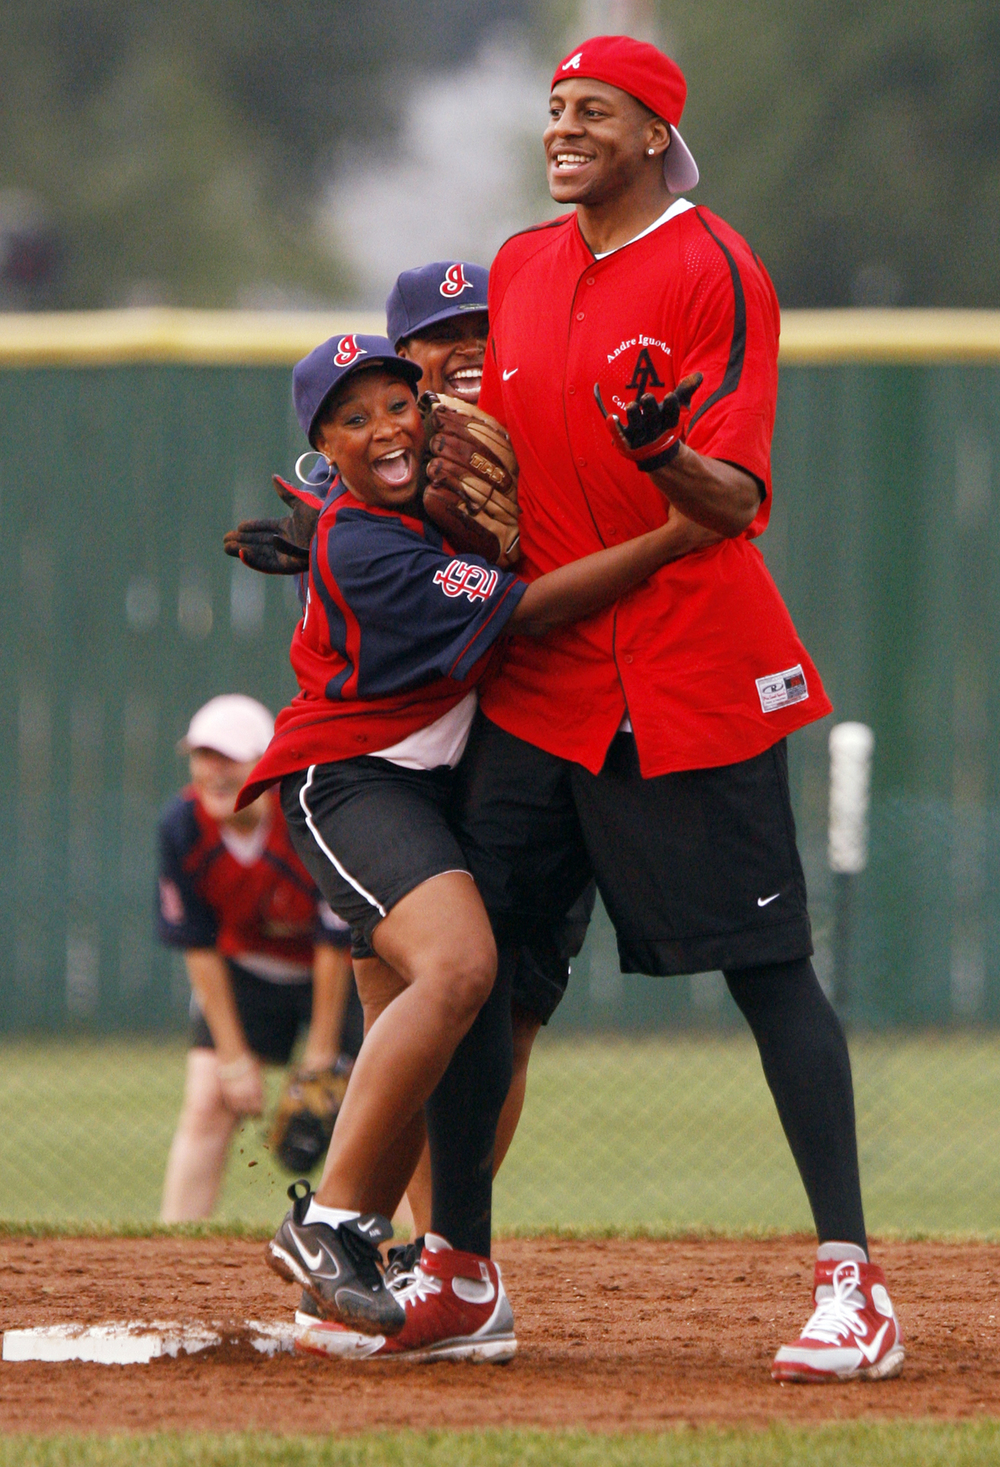 Paris Erwin, left, Nancy Collins and Andre Iguodala argue and laugh after a play at second base Saturday, August 4, 2007 during the Celebrity All-Star Softball Game at Lanphier Park. Iguodala's team of celebrites battled members of the local  media. Ted Schurter/The State Journal-Register